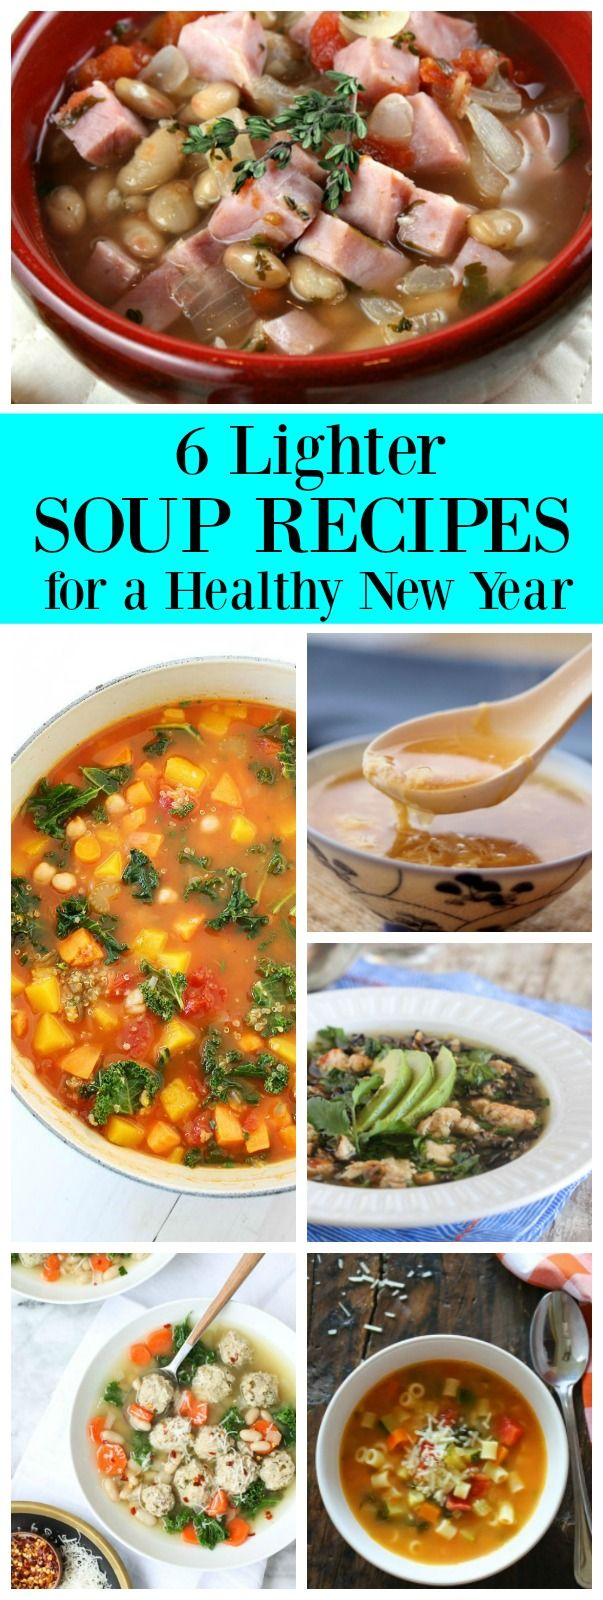 6 Lighter Soup Recipes for a Happy New Year: you'll find soup recipes such as Smoked Ham Soup with White Beans, Vegetable Quinoa Soup and More!